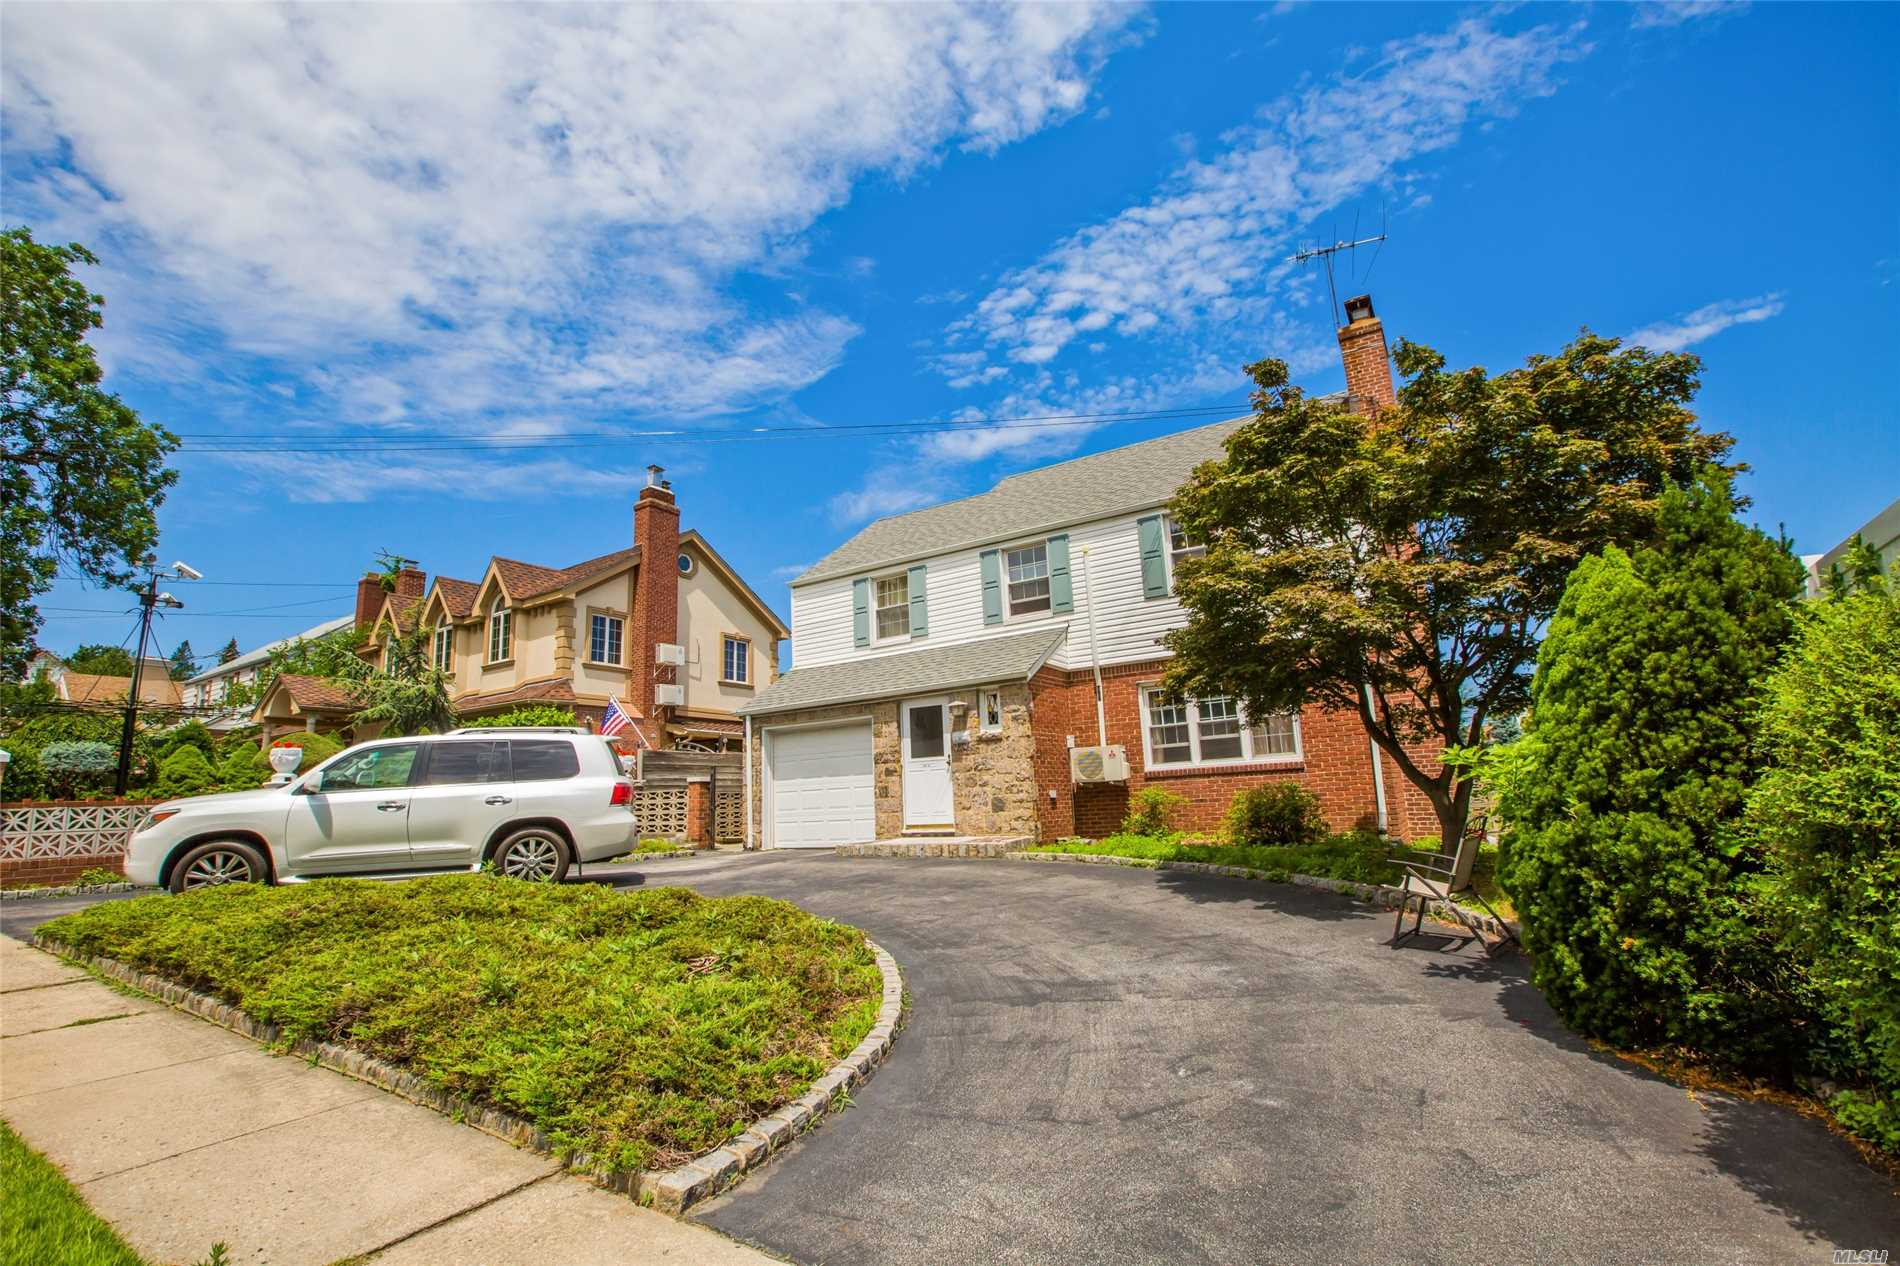 Beautiful 3 Beds - 4 Beds House For Rent. Dishwasher And Laundry Room. Excellent Neighborhood And Amazing Water View. Great Location Close To Cross Island Parkway, Clearview Expressway, Golf Course And Fort Totten Park.